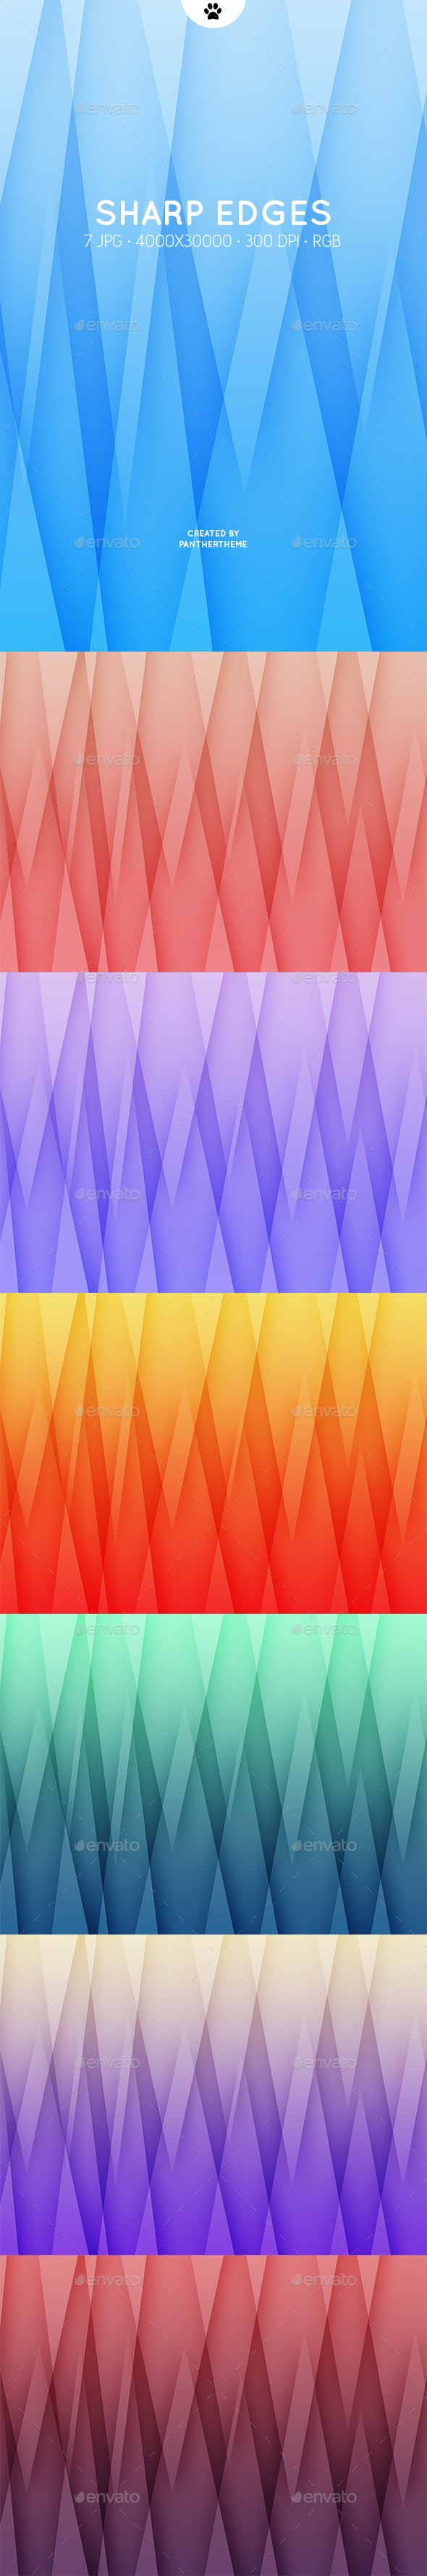 Sharp Edges Backgrounds - Abstract Backgrounds